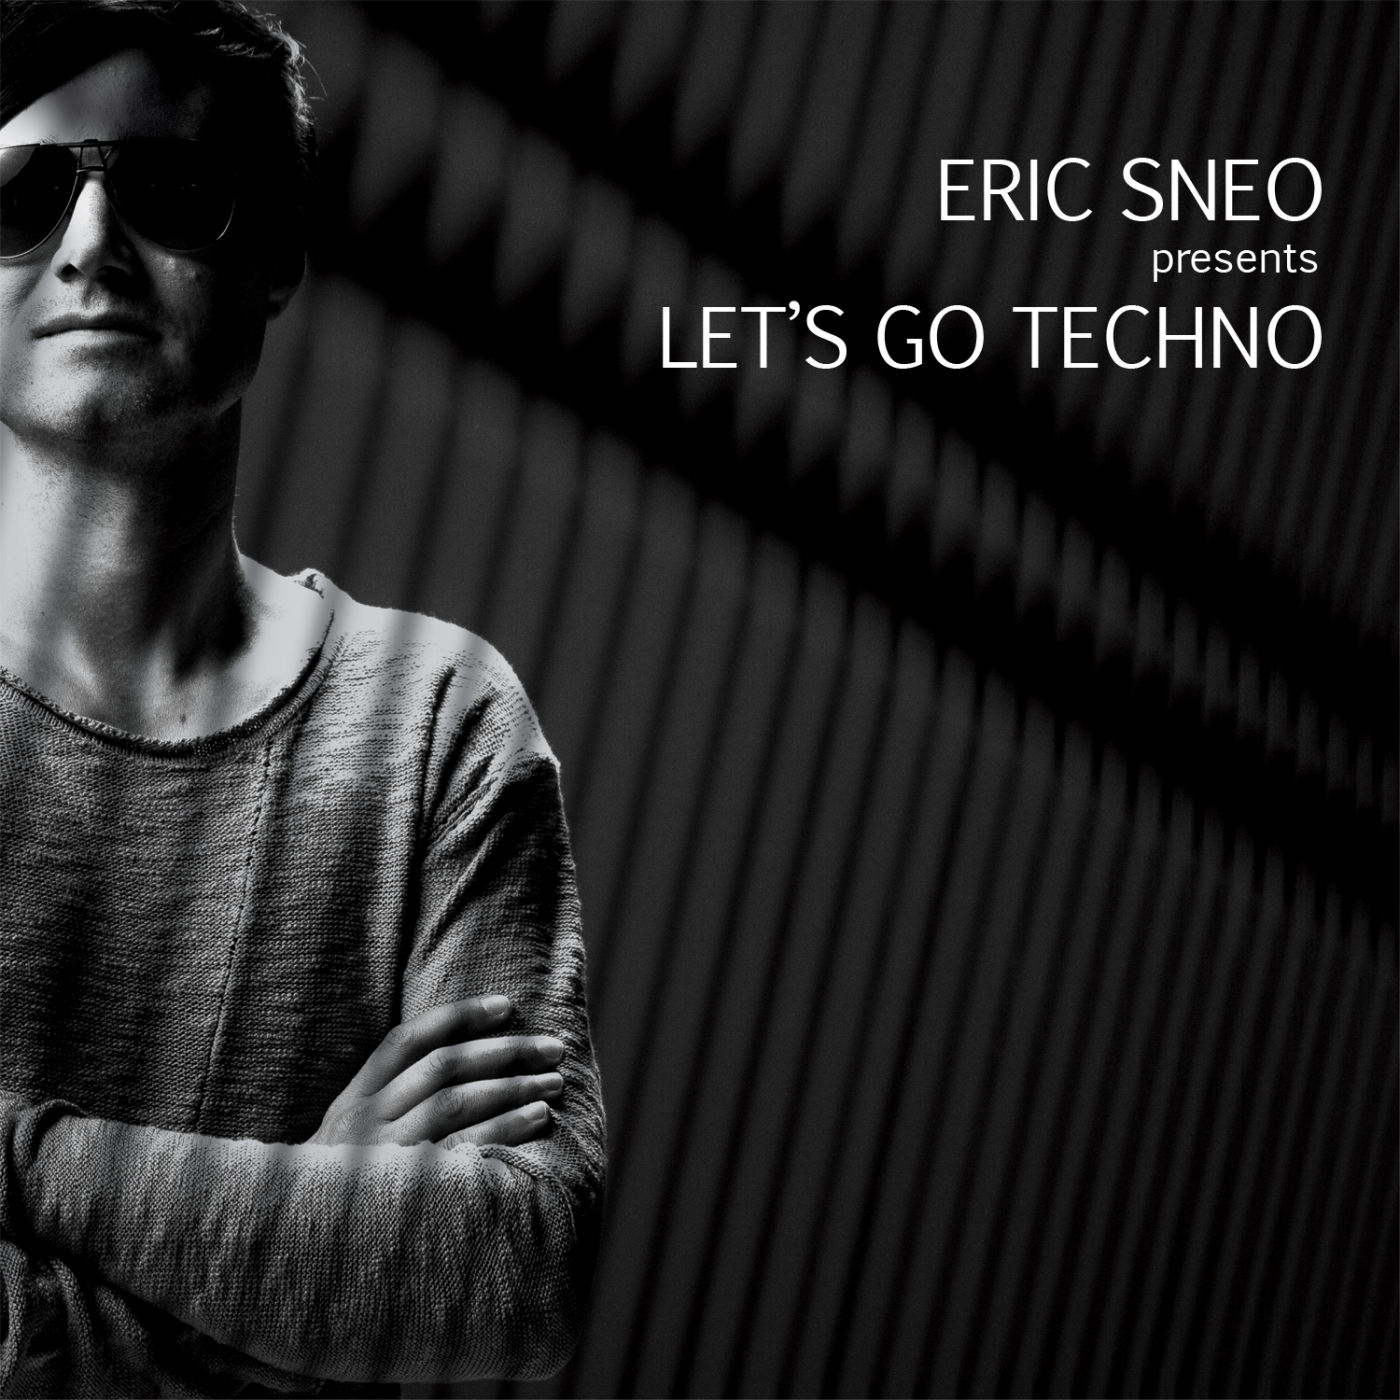 Let's Go Techno by Eric Sneo